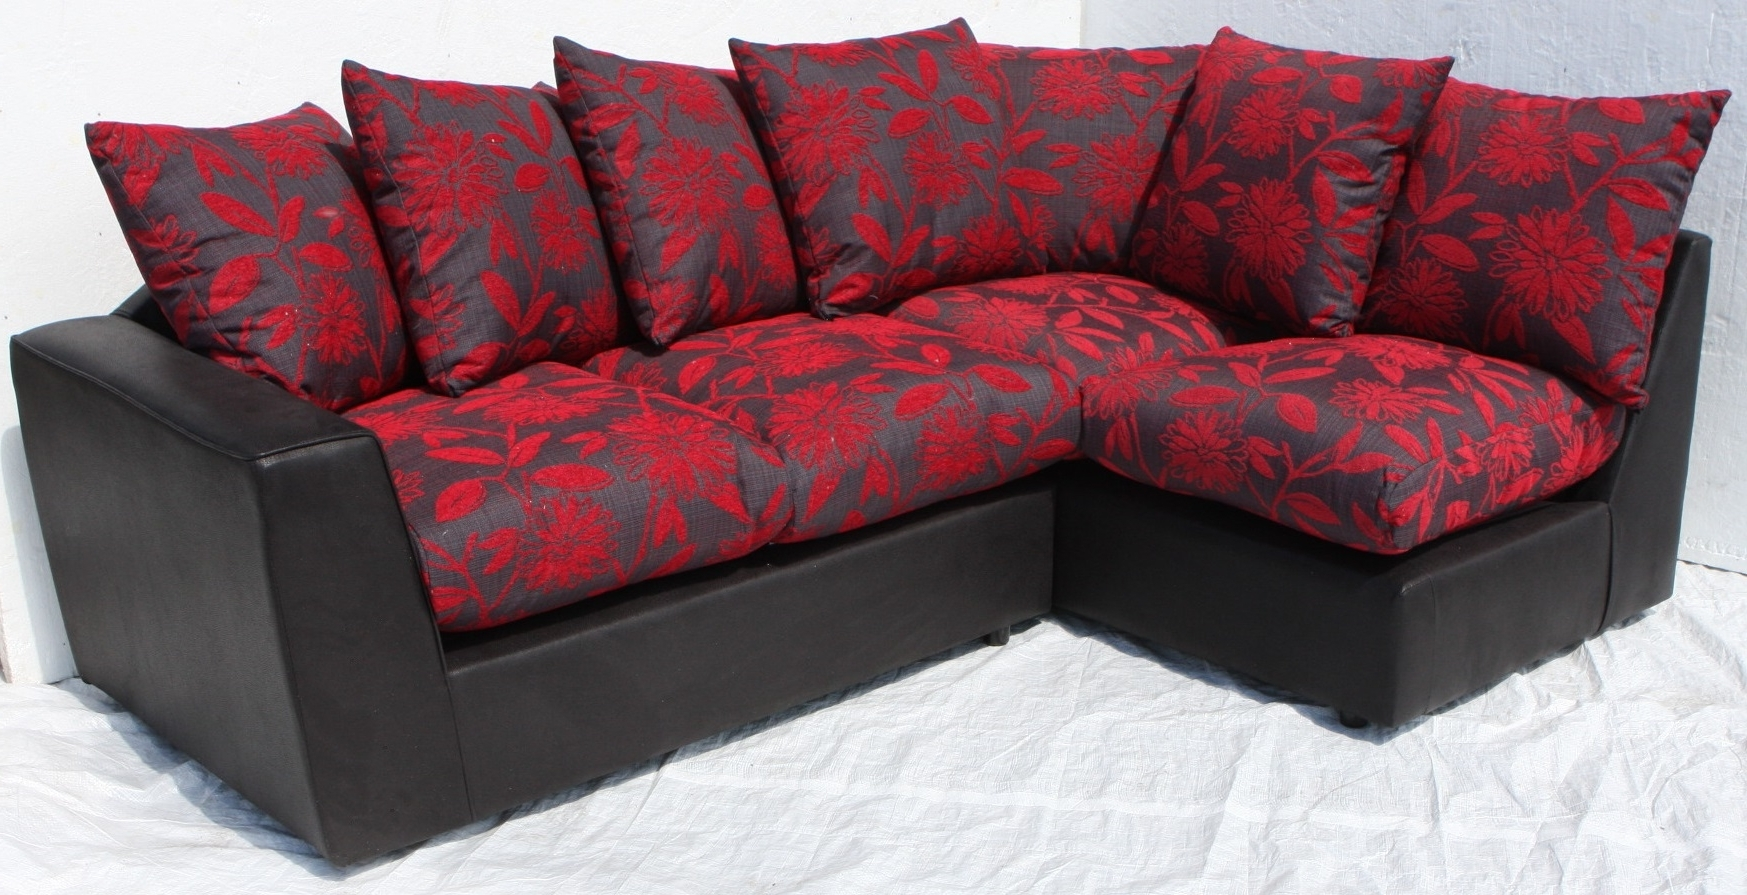 Helibeds Same Day Or Next Day Delivery Of – Sofa's – Harry Corner Regarding Recent Red And Black Sofas (View 7 of 15)